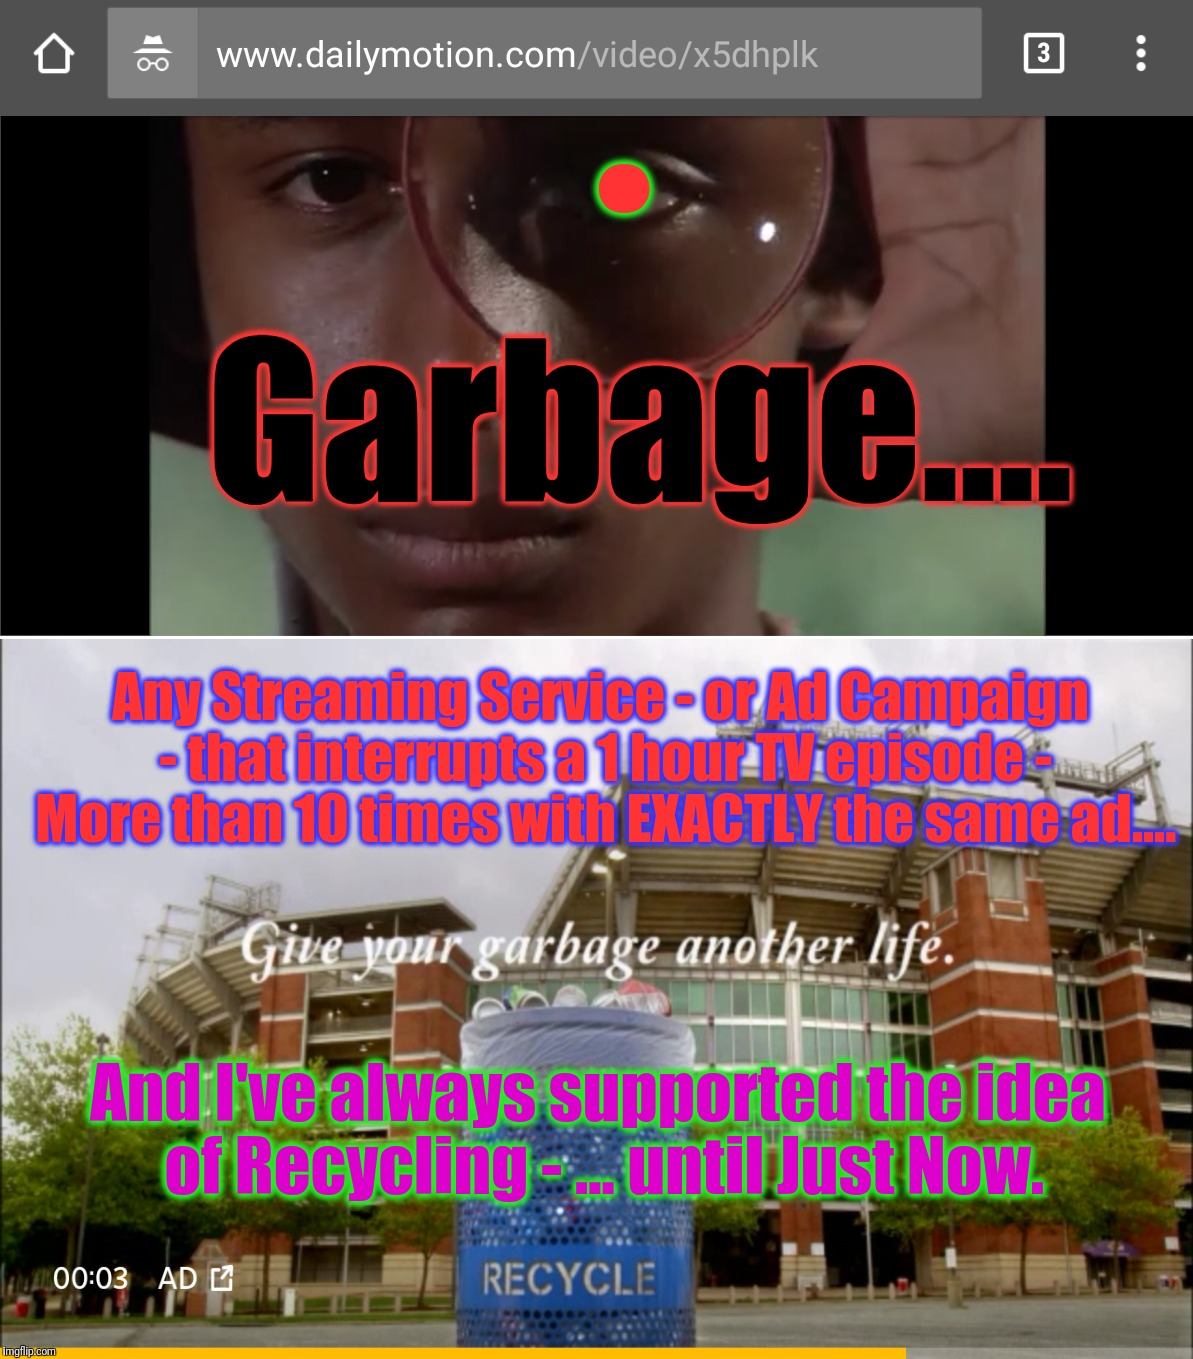 . Garbage.... Any Streaming Service - or Ad Campaign - that interrupts a 1 hour TV episode - More than 10 times with EXACTLY the same ad.... And I've always supported the idea of Recycling - ... until Just Now. | image tagged in internet advertising signal to noize ratio,dailymotion vs youtube,kung fu,full episodes,nothing is free,memes | made w/ Imgflip meme maker